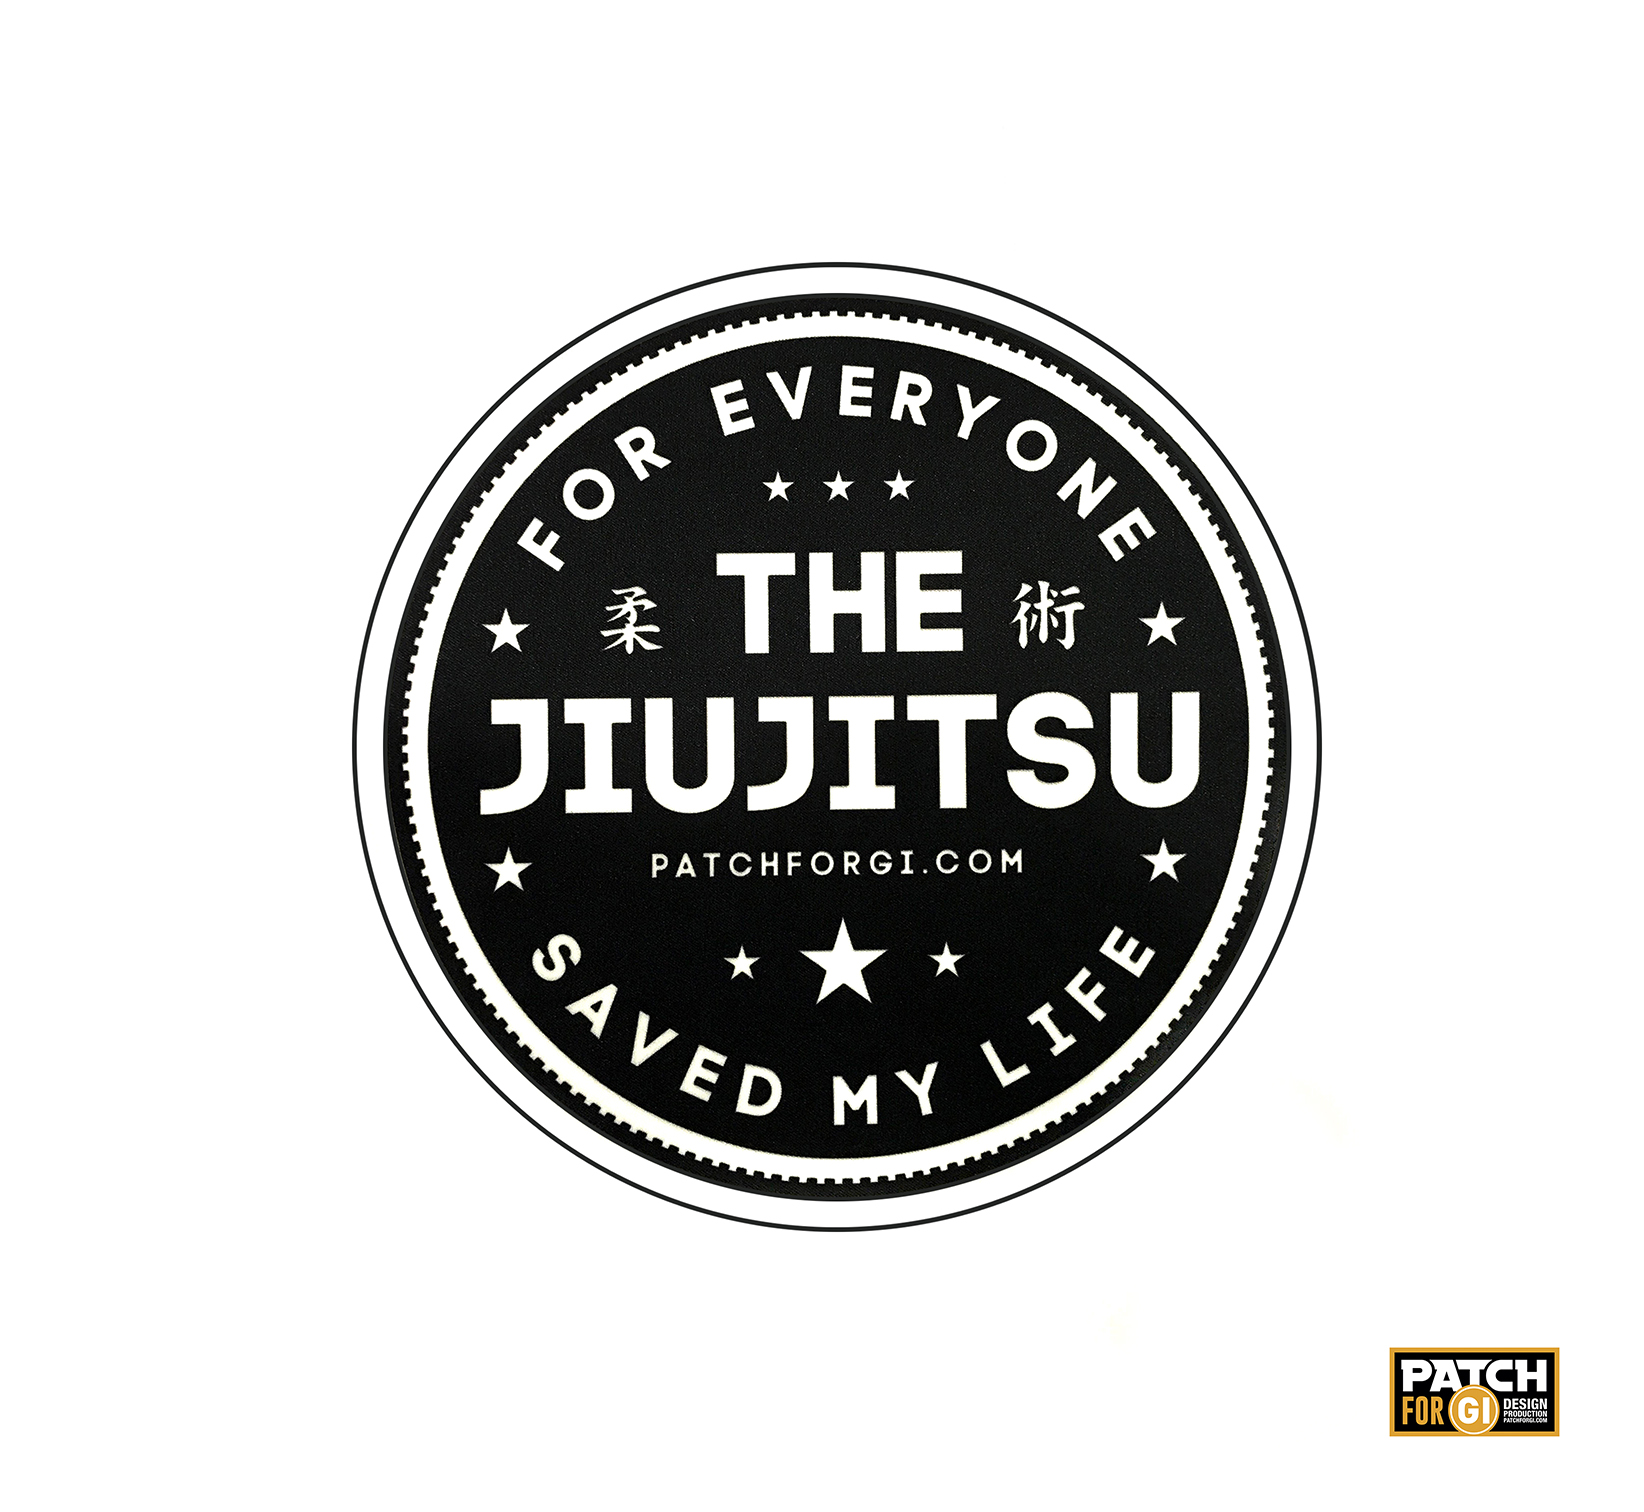 PATCH JIU-JITSU FOR EVERYONE